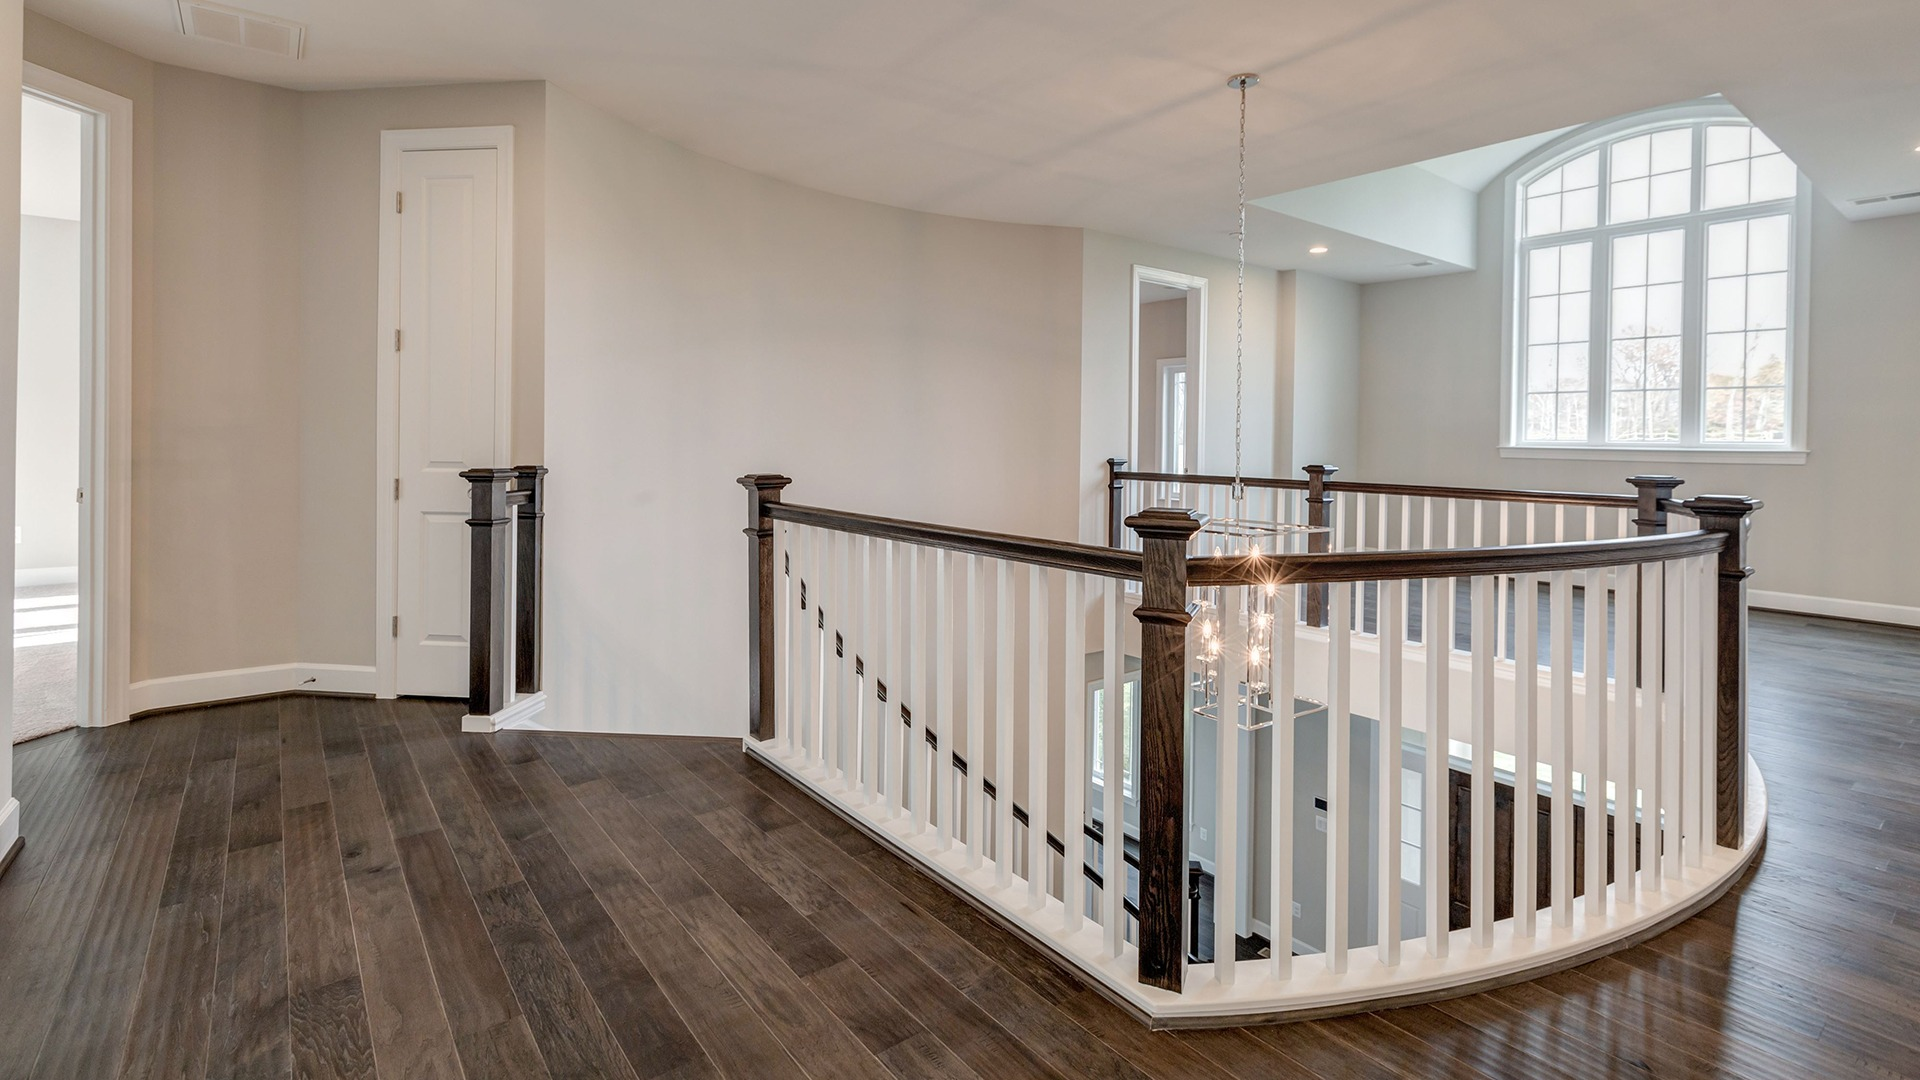 The Loft in the Winthrop on Lot 4 at Thompson's Crossing.